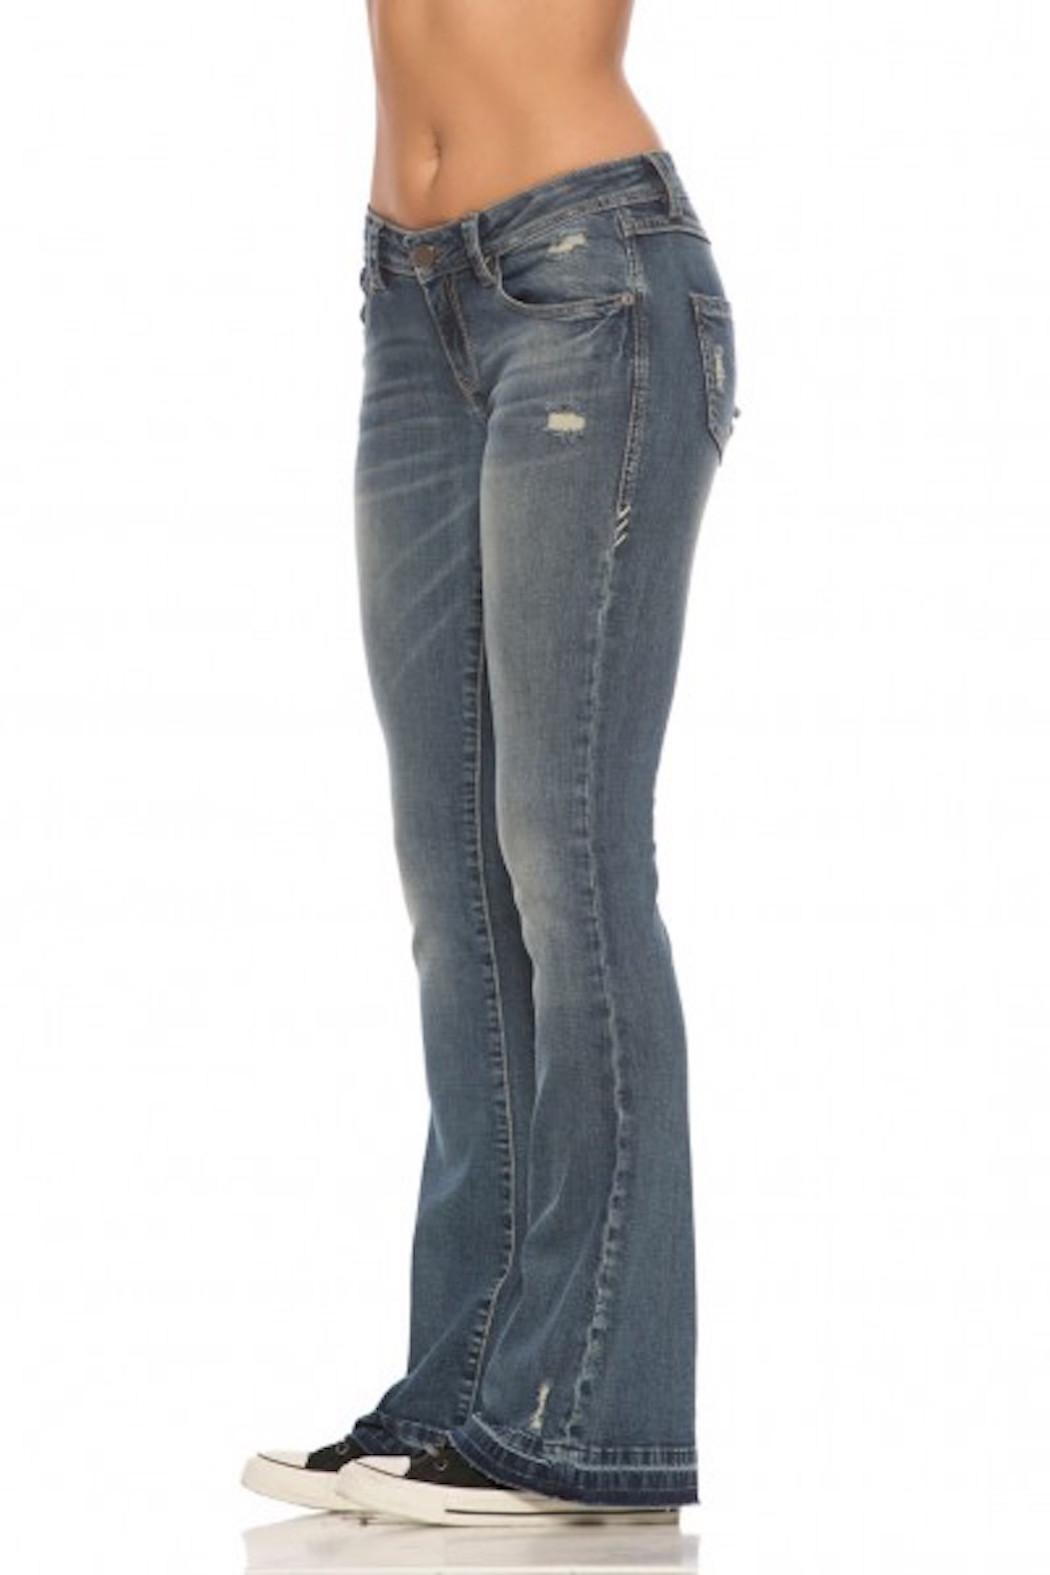 Rubberband Stretch Karen Flares Jeans - Front Full Image